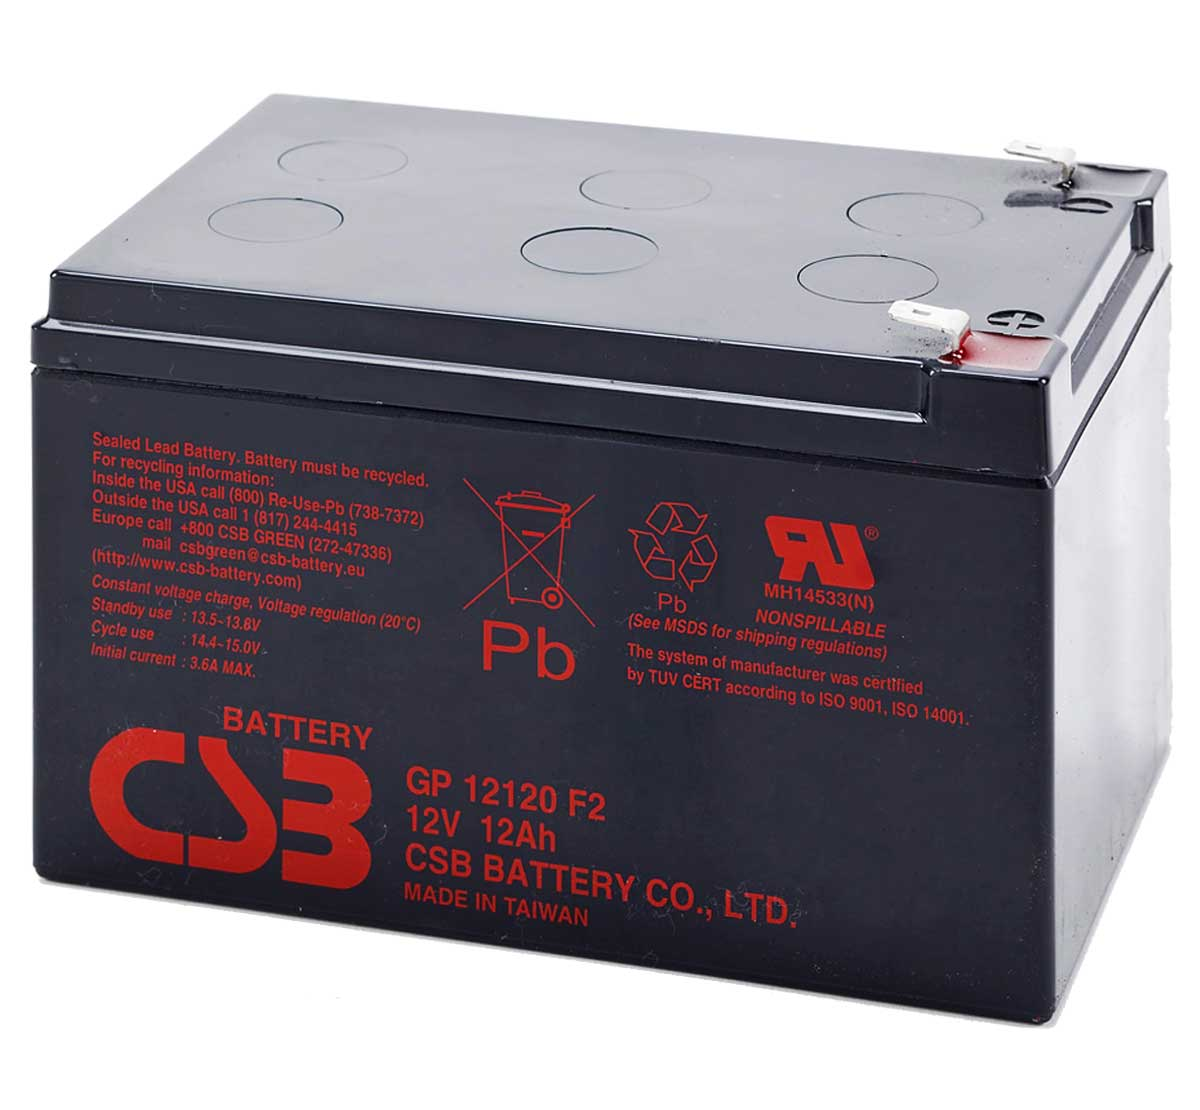 Lead Acid Battery 12v 12ah Gpl Csb Akkus